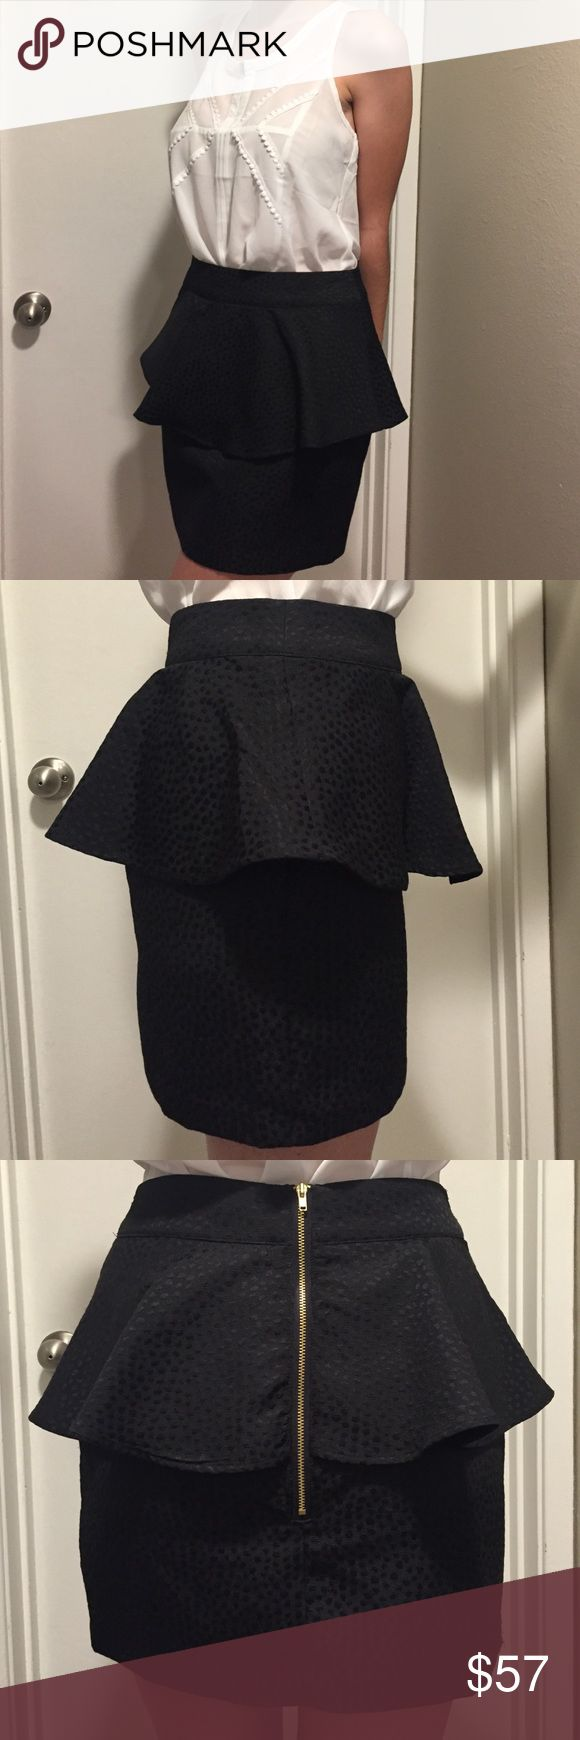 UO Black Peplum Skirt Beautiful brand new Black Peplum skirt with with gold zipper in back and dotted texture all over. Curve hugging skirt. Urban Outfitters Skirts Pencil